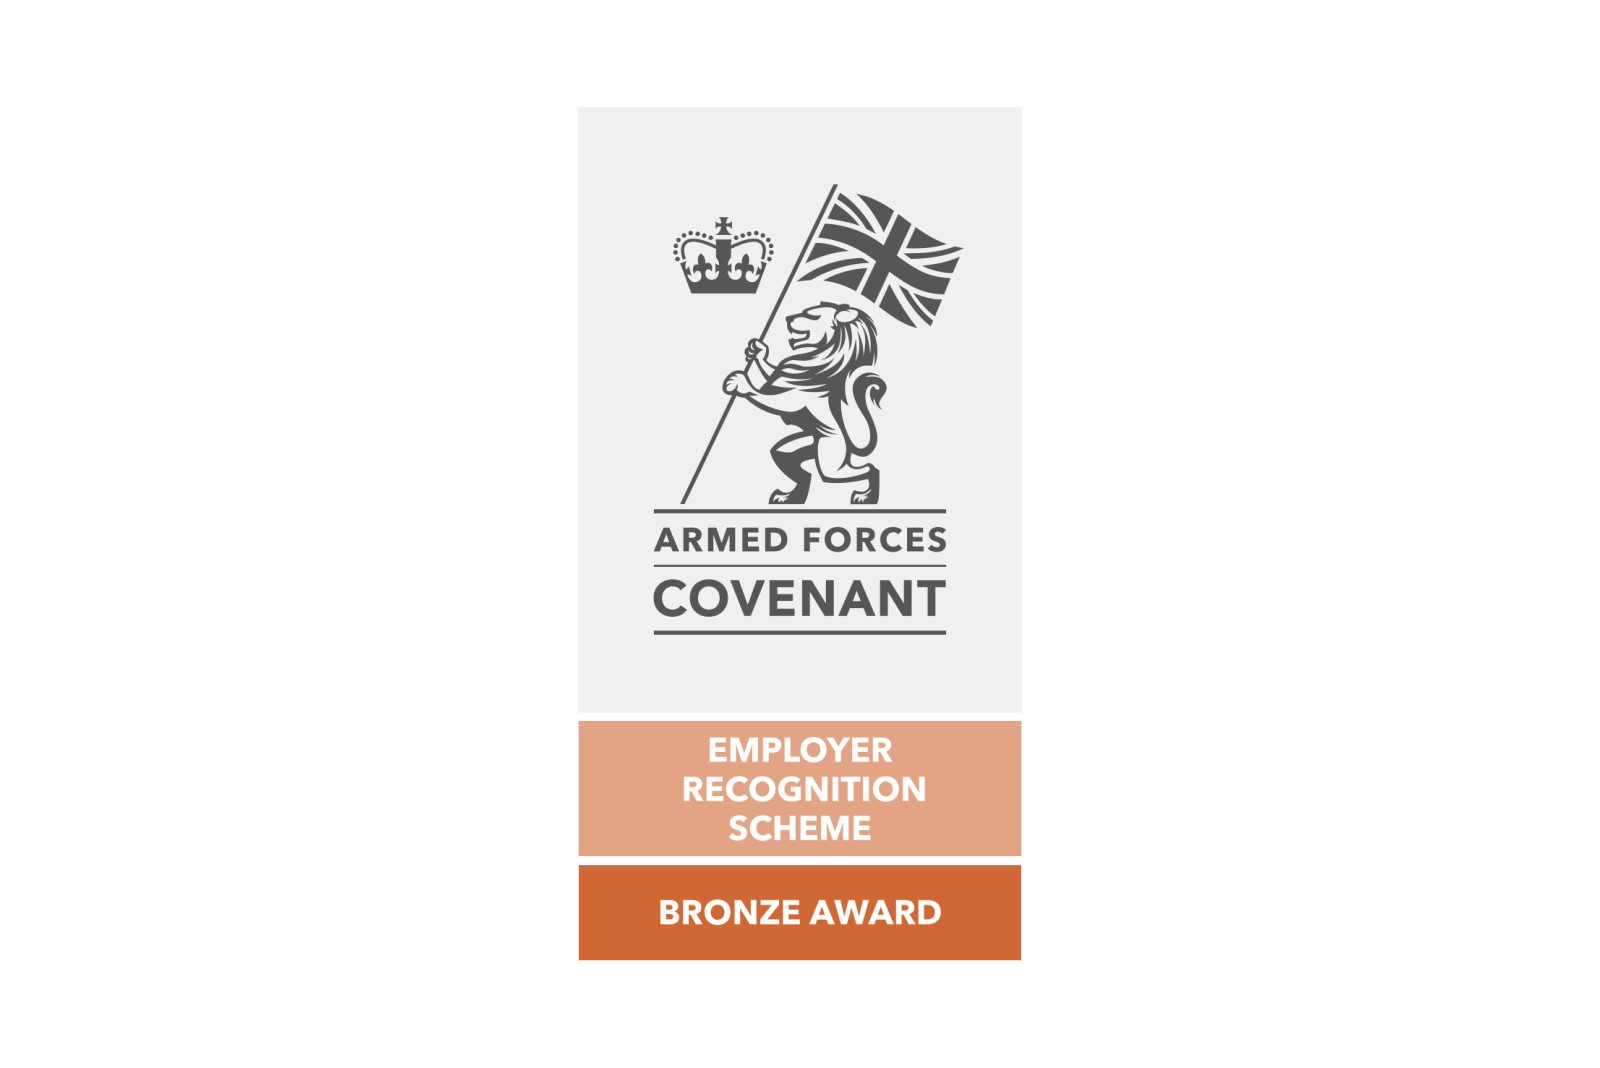 Bronze award recognising Armed Forces Covenant